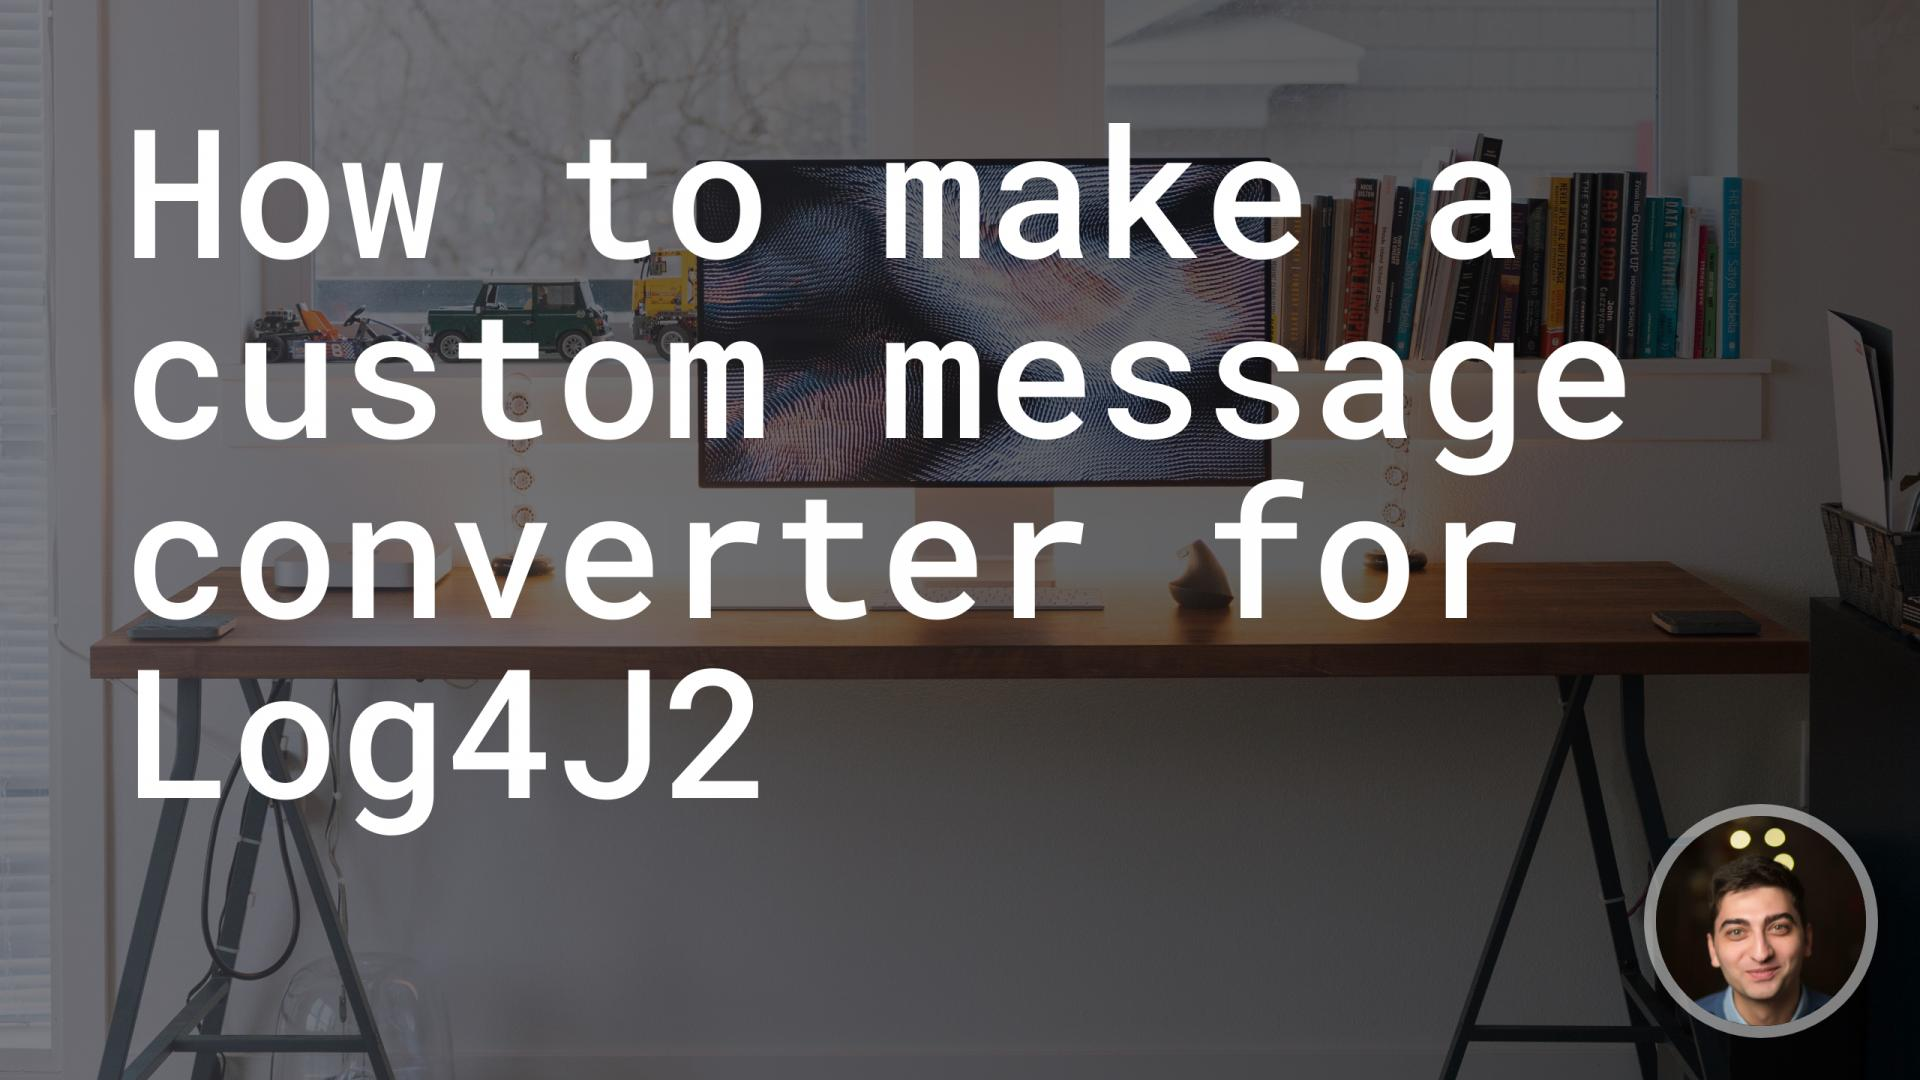 How to make a custom message converter for Log4J2